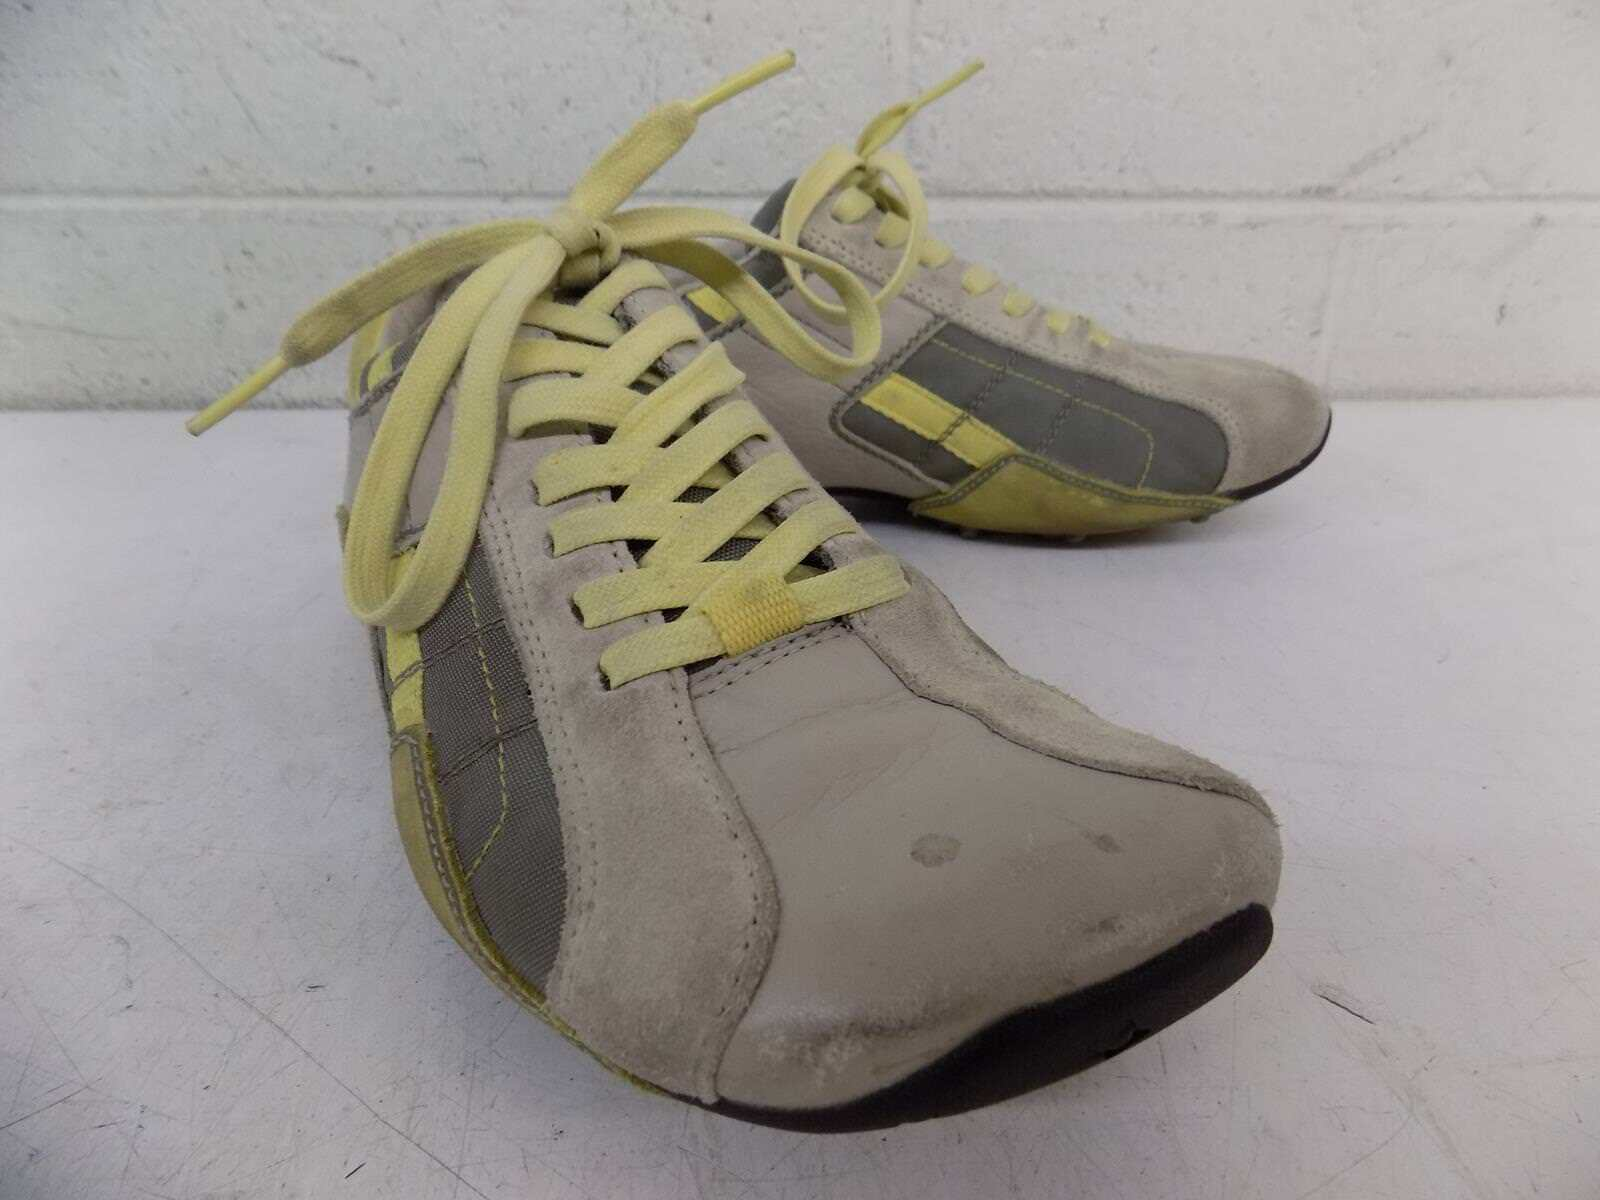 Diesel Aquila Gray & Yellow 7 Women's Fashion Sneakers US 7 Yellow EXCELLENT LOOK e848ec